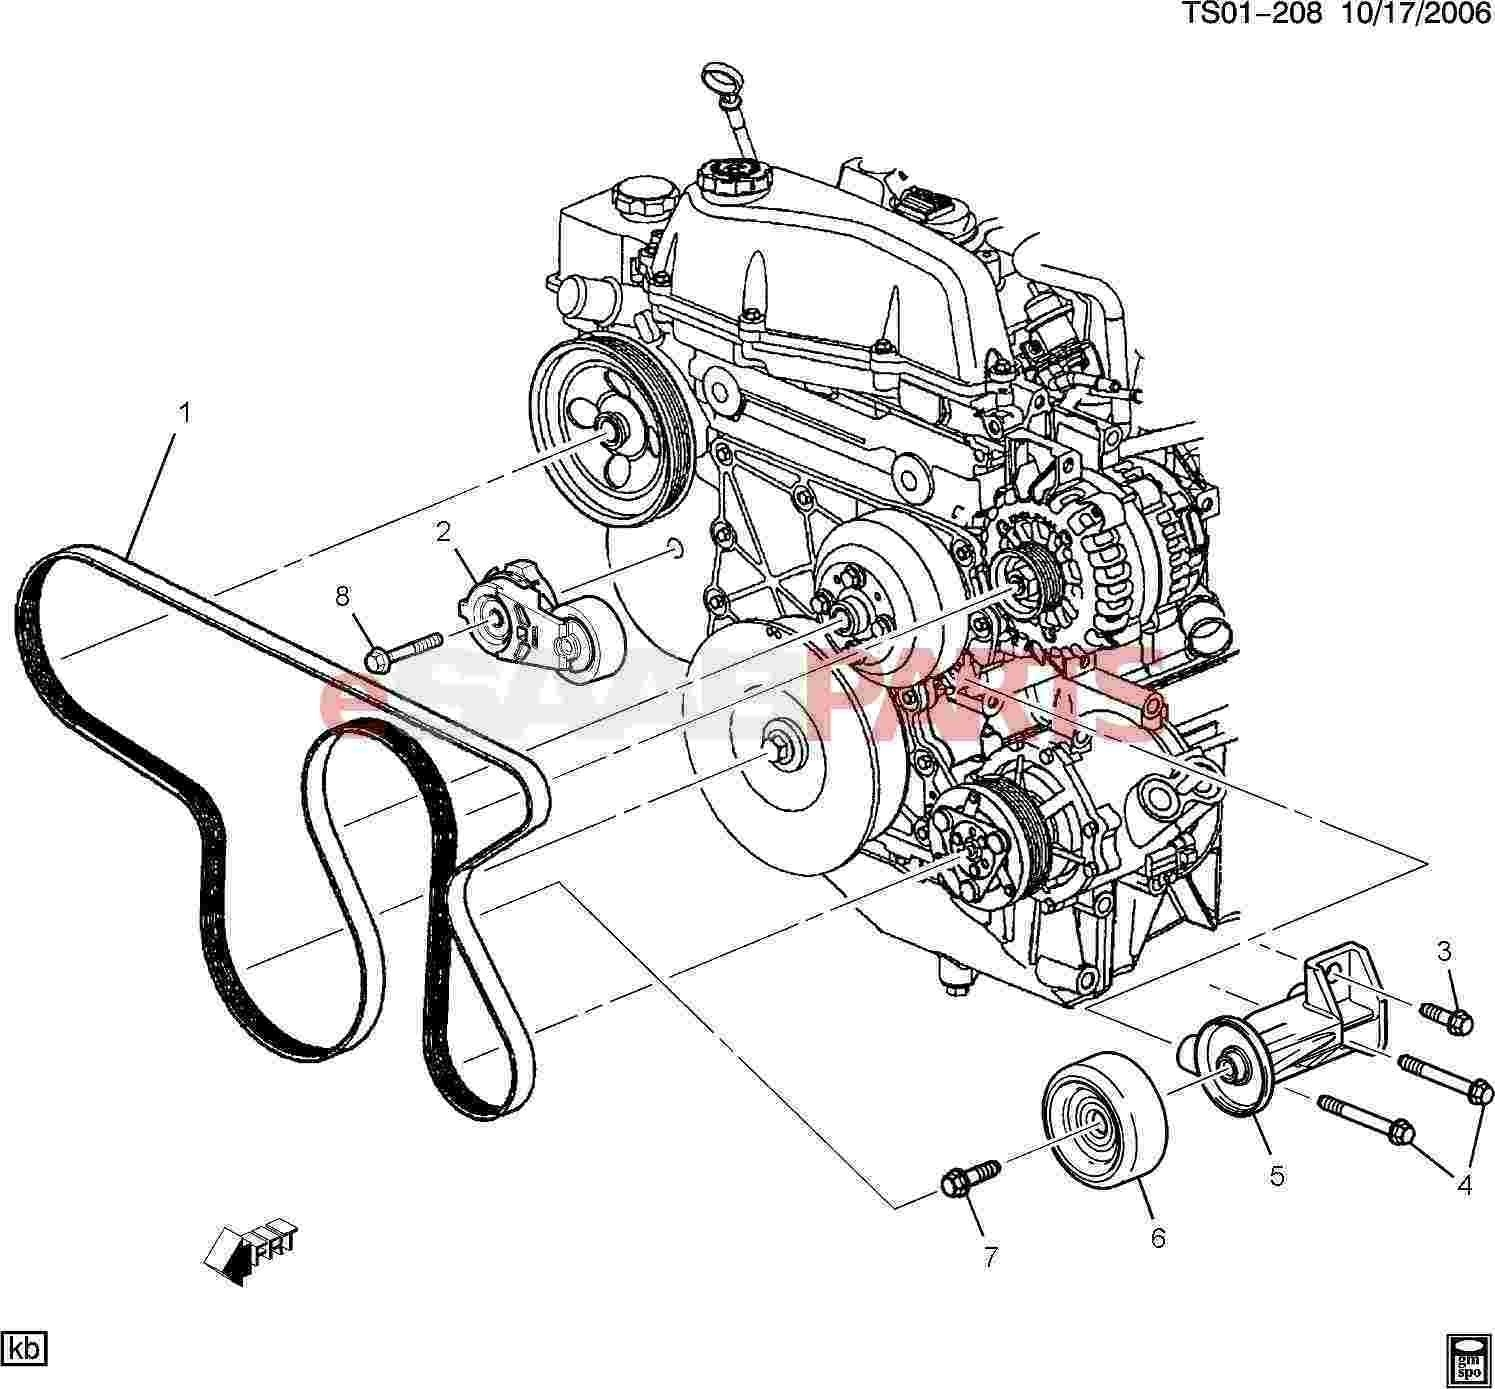 hight resolution of 2001 subaru outback engine diagram 1997 toyota corolla engine diagram 2002 toyota corolla engine of 2001